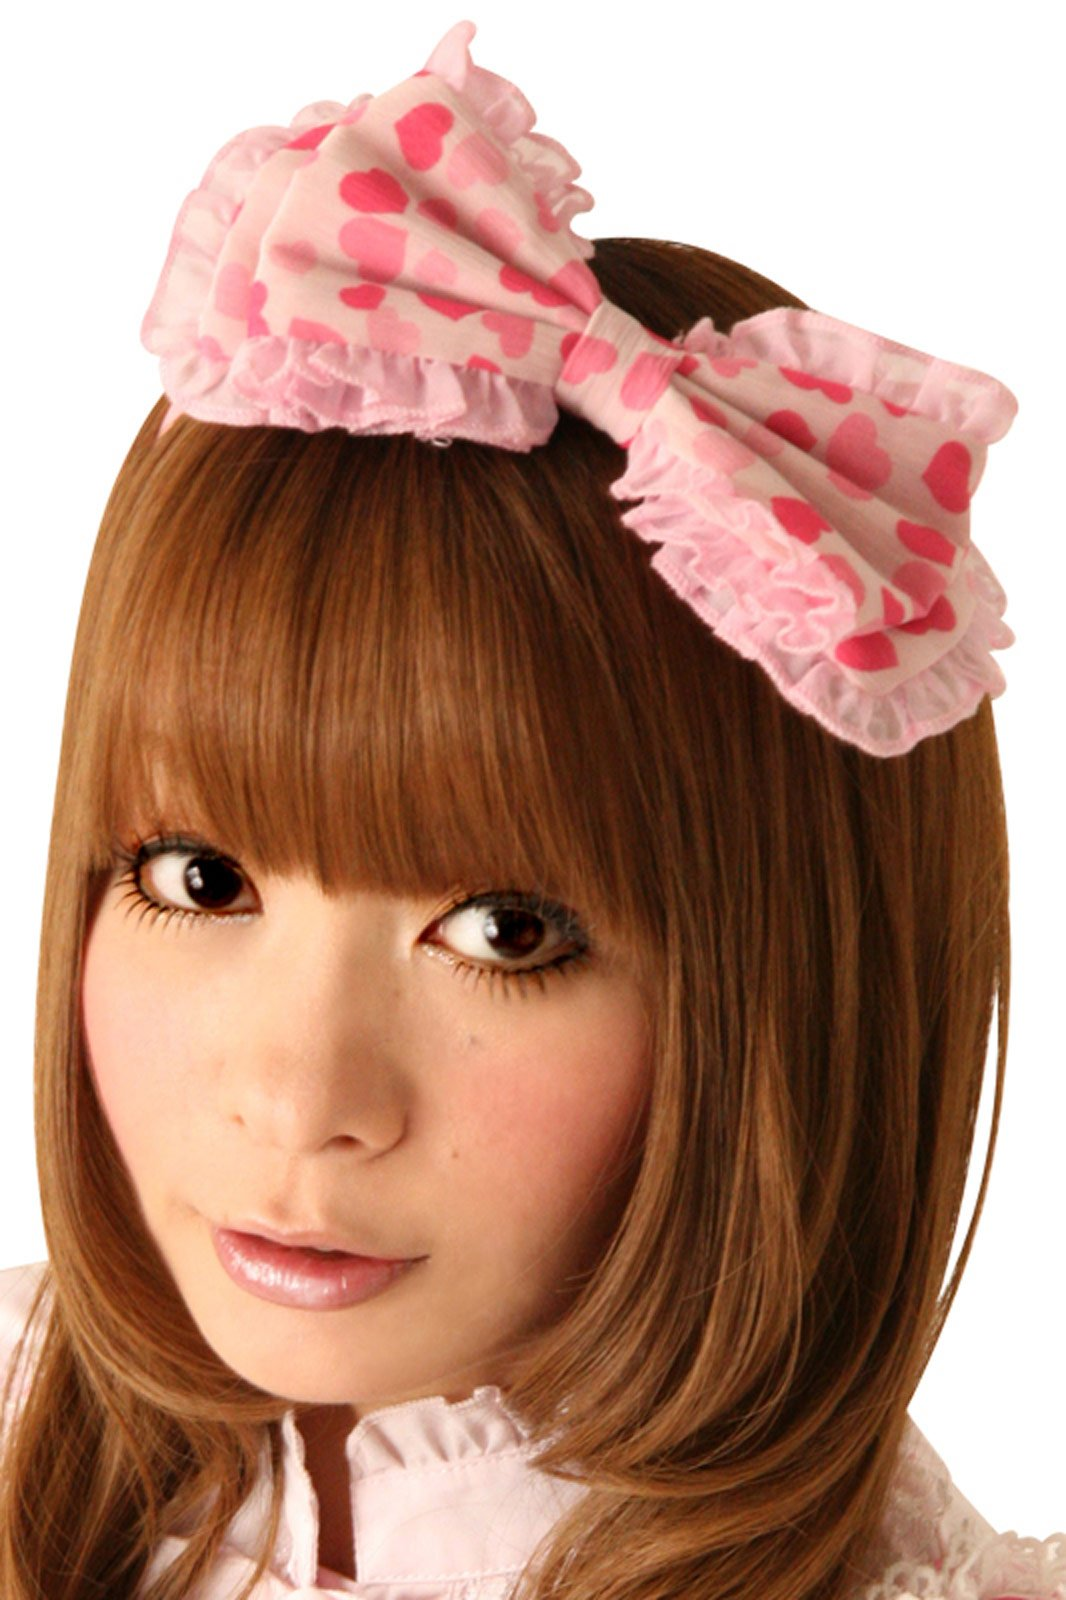 Cream Doll Heart Taffy Hair Bow Headpiece